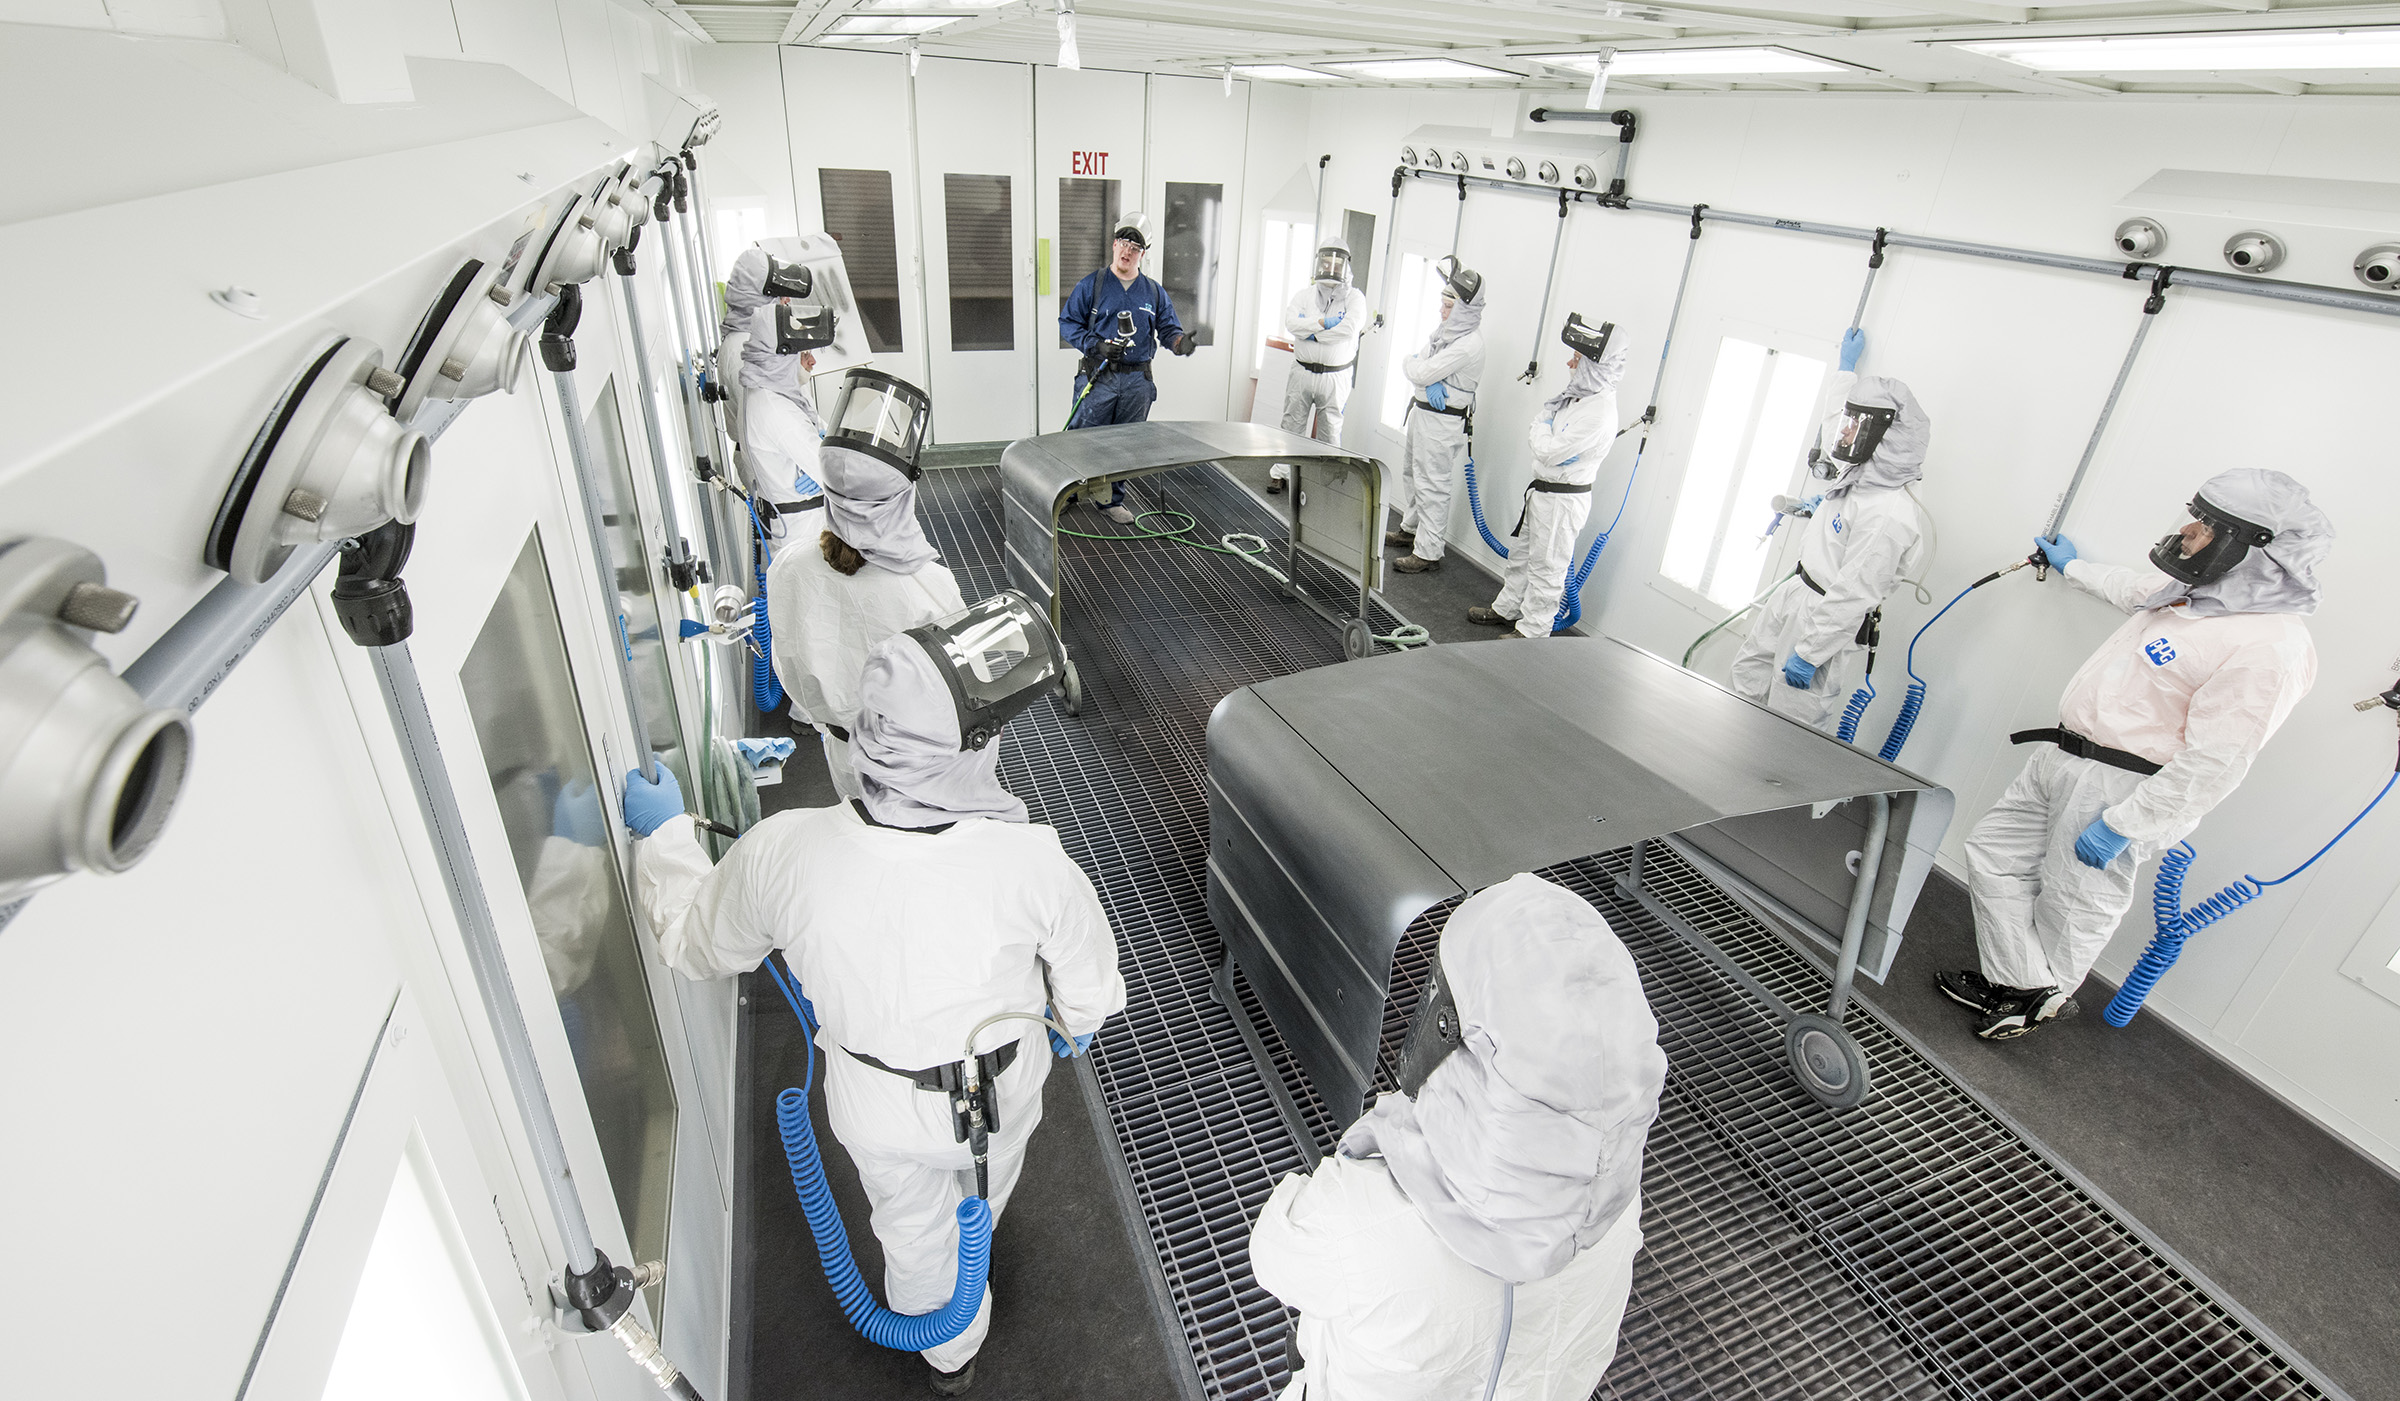 PPG Expands Presence in Argentina with New Automotive Refinish Training Center